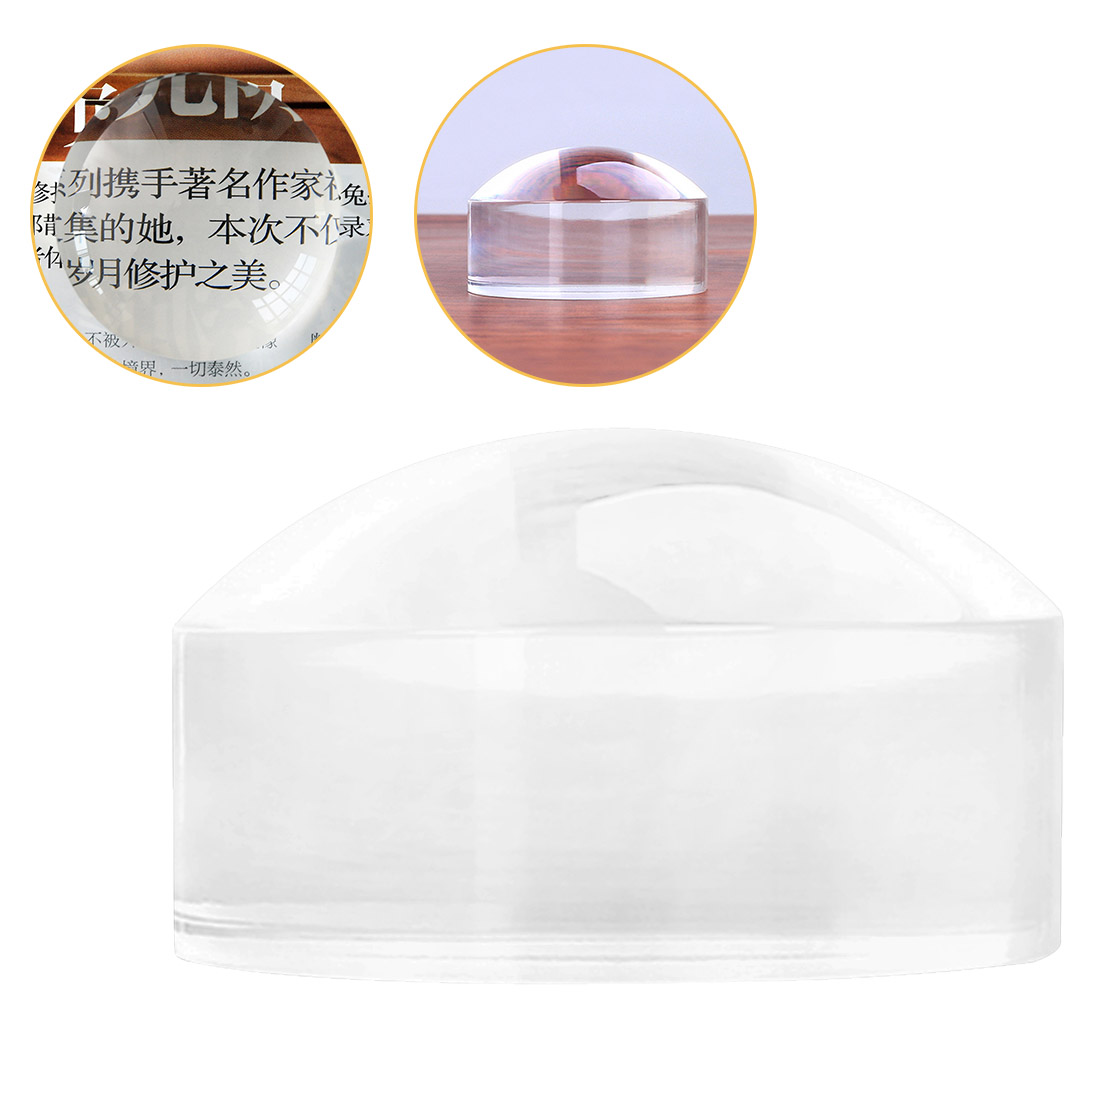 50/60mm loupe Magnifier Crystal Acrylic magnifying glass Dome Paperweight Map Magnifying Tool for Reading Aid